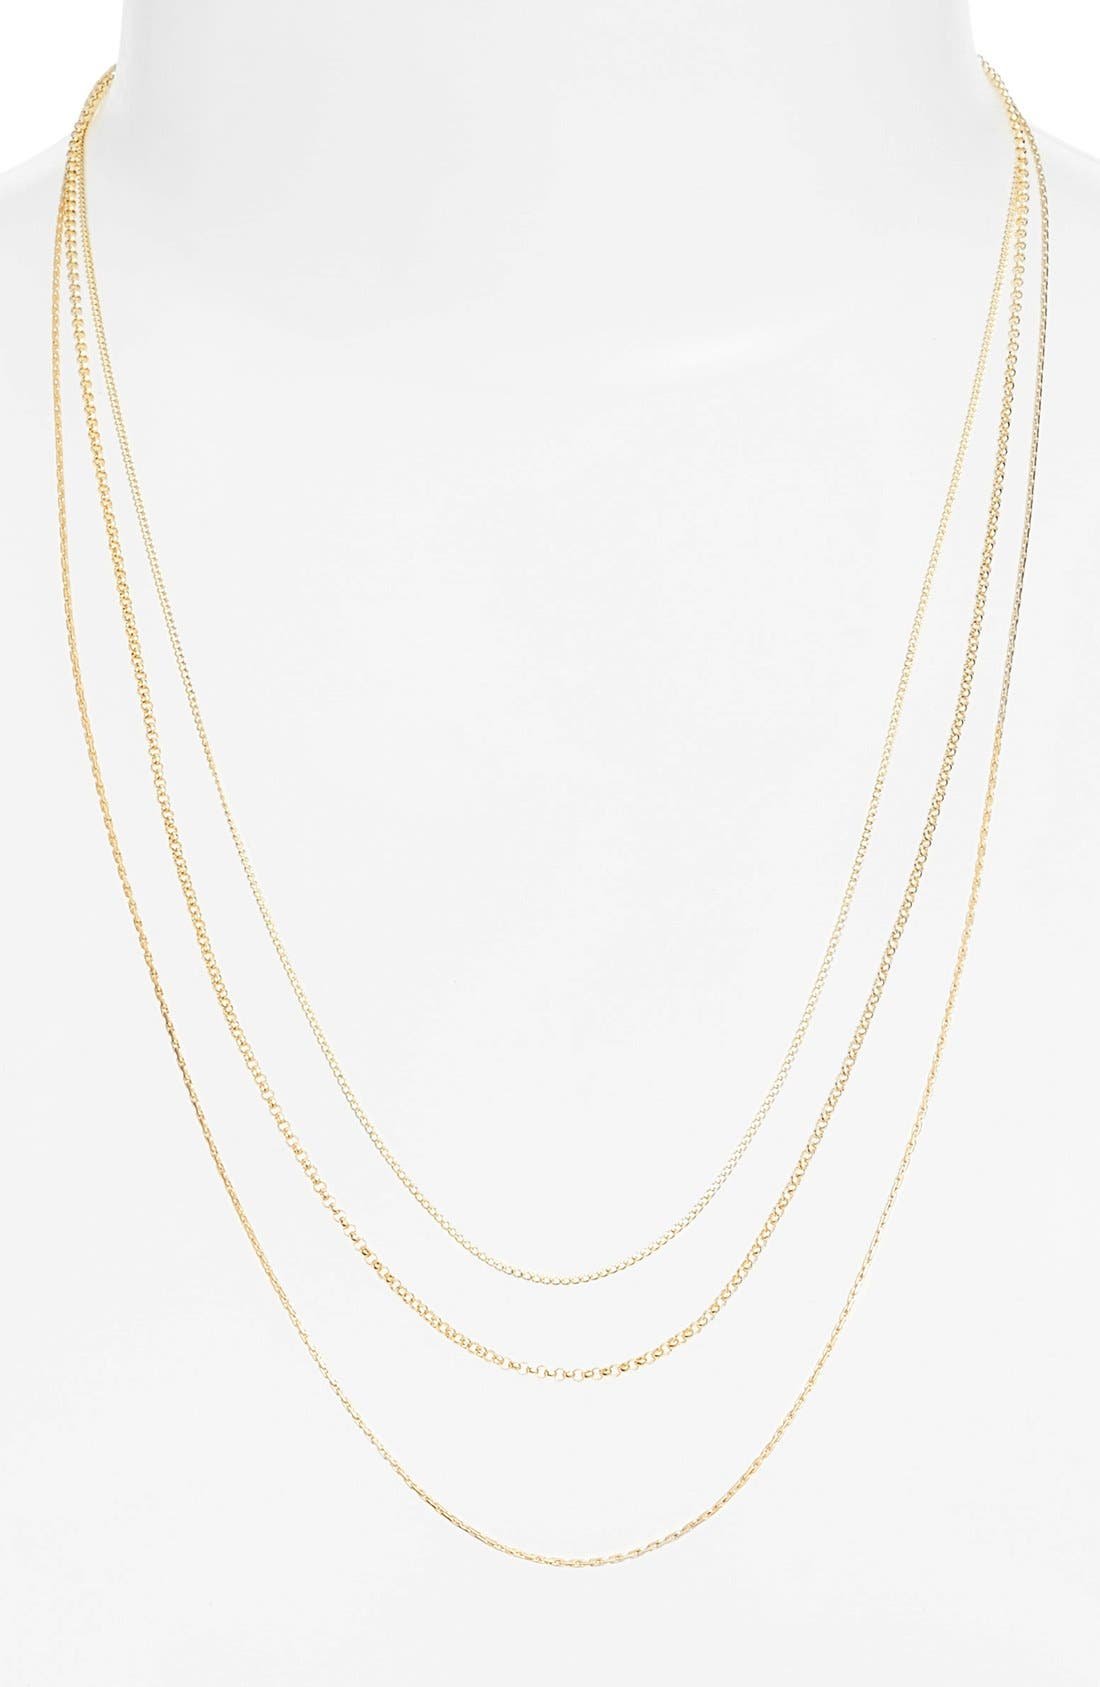 Main Image - Leah Alexandra Multistrand Chain Necklace